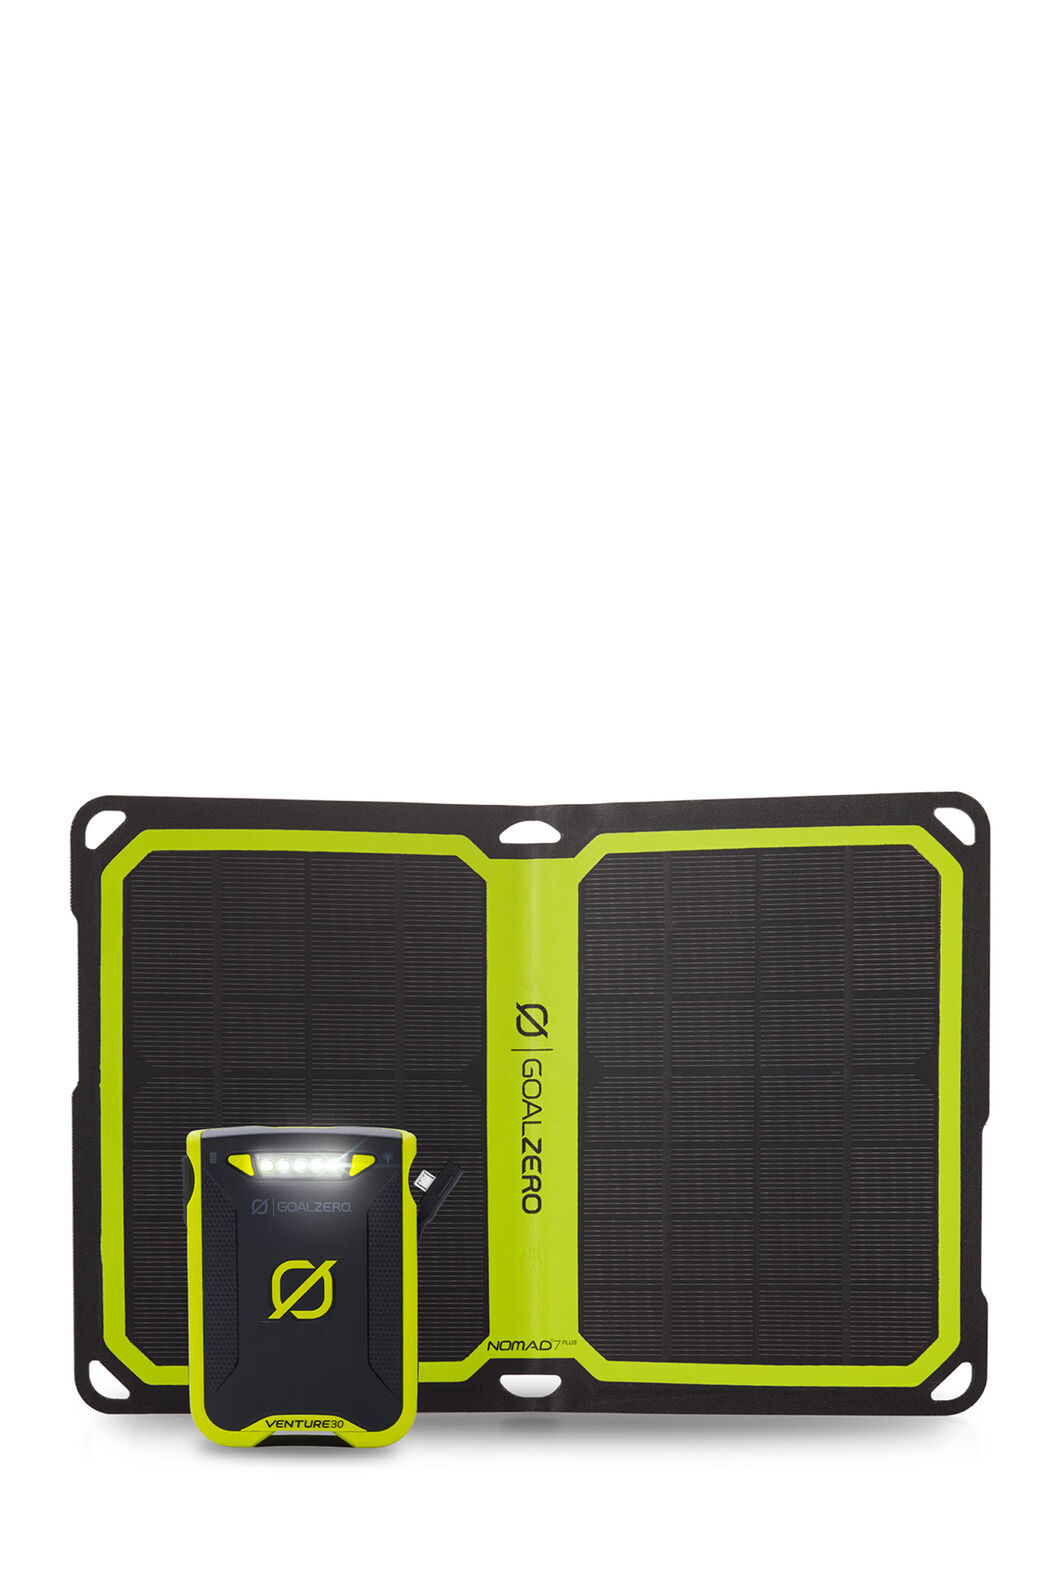 Goal Zero Venture 30 Plus Nomad 7 Solar Kit, None, hi-res